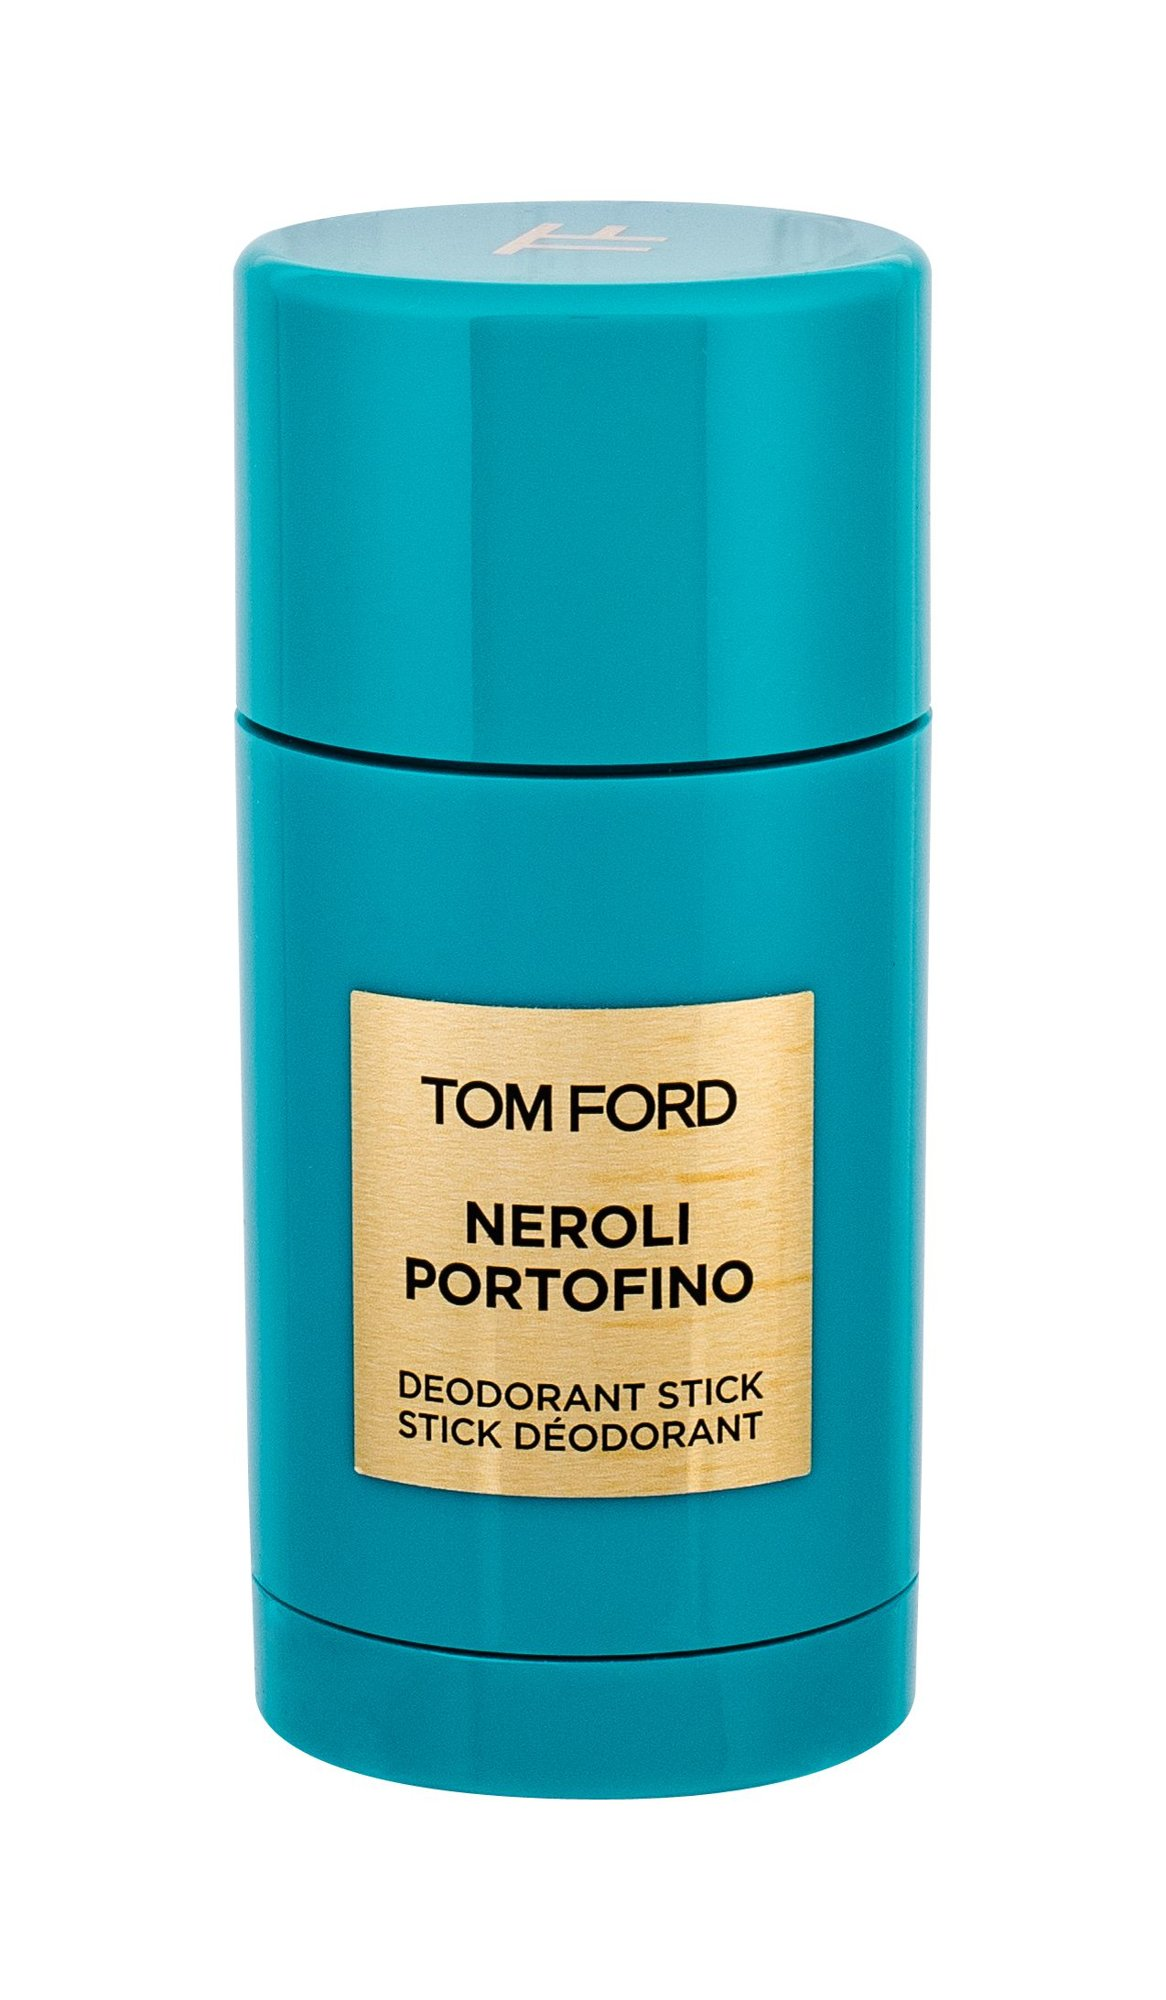 TOM FORD Neroli Portofino Deostick 75ml